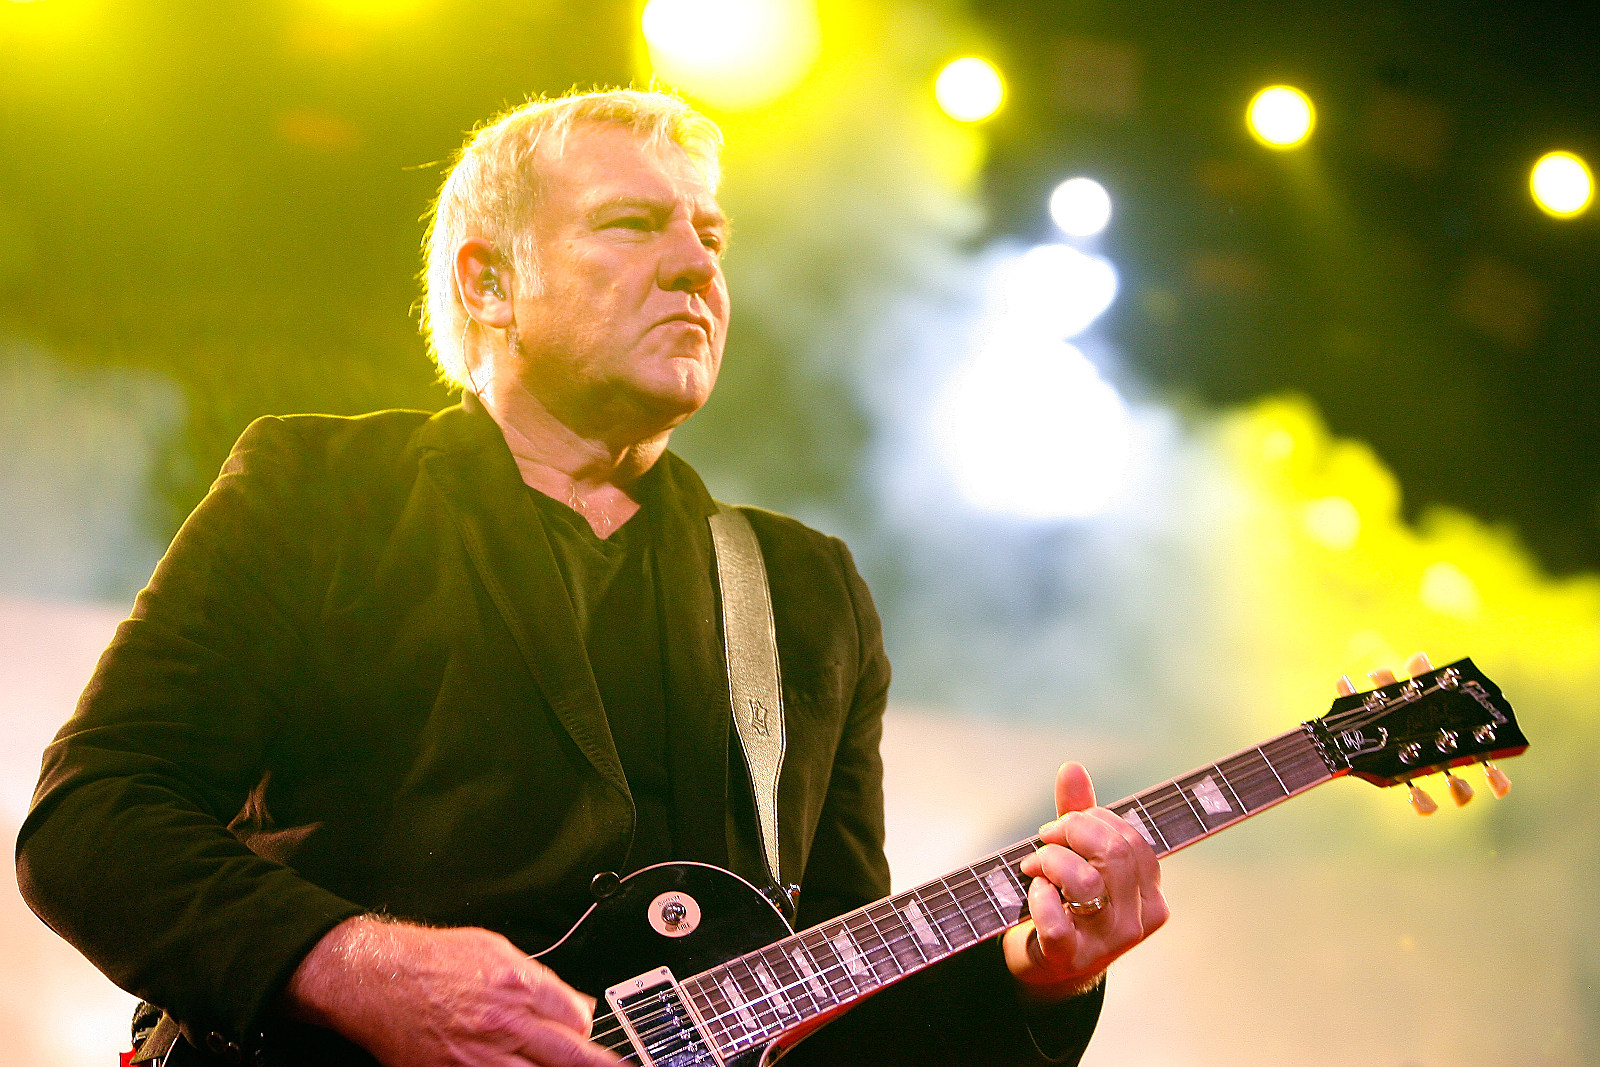 Alex Lifeson: 'I Don't Want to Be in a Band and Tour Anymore'